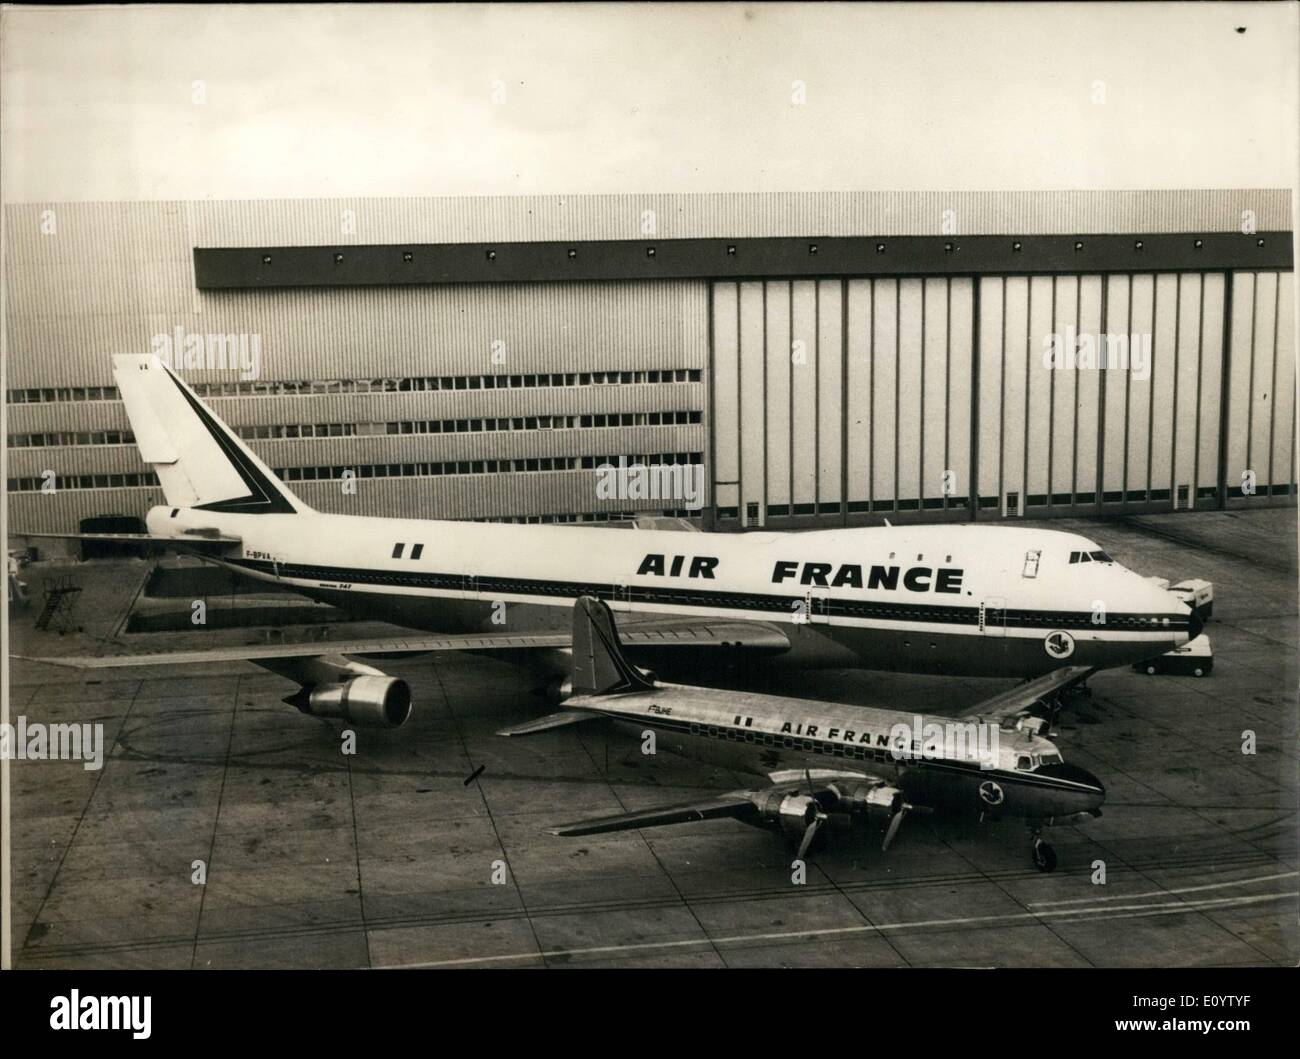 Jun. 06, 1971 - The Giants and the Dwarf: Twenty years of Atlantic Story Between the two aircraft.: A giant Boeing Stock Photo